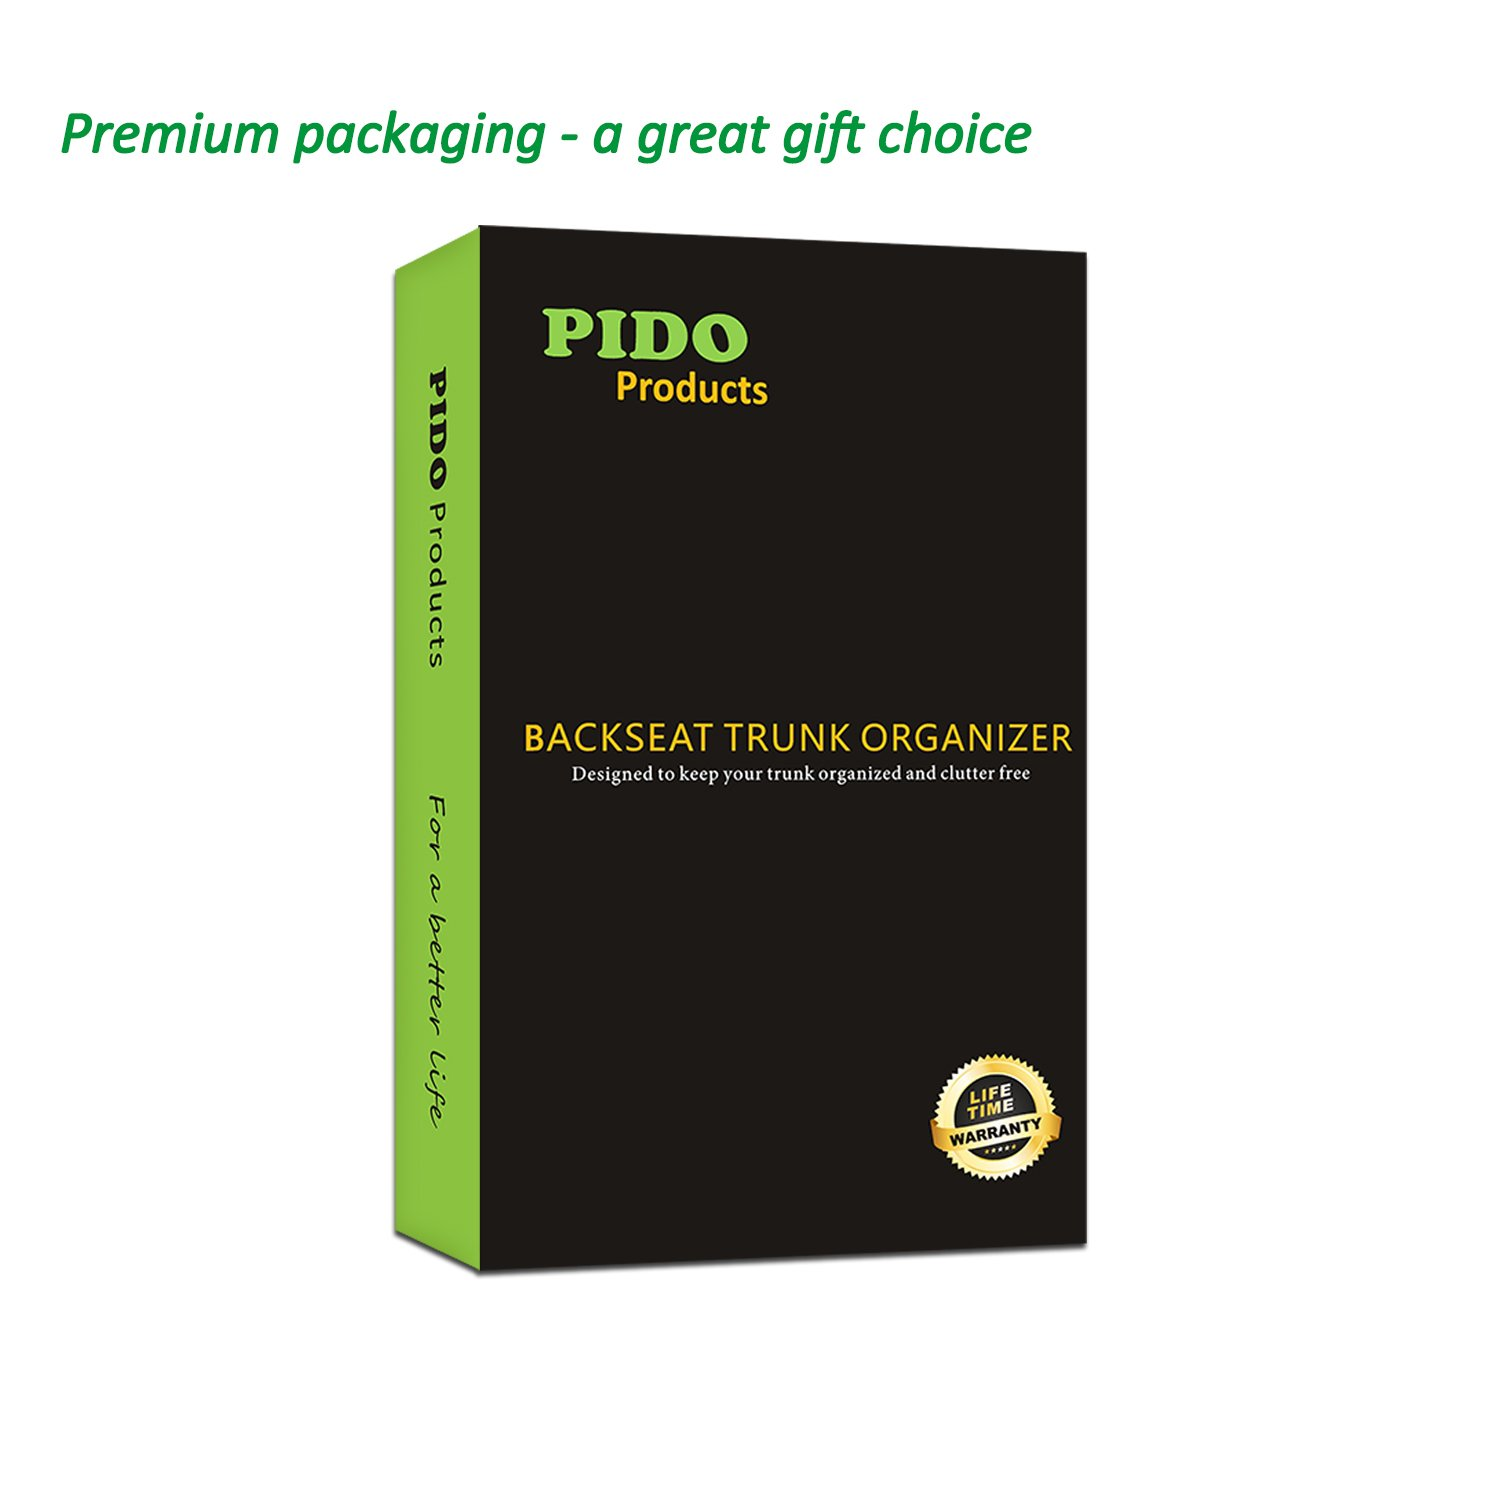 PIDO Backseat Trunk Organizer, Auto Hanging Seat Back Storage Organizer for SUV and Many Vehicles – Free Your Trunk Space by PIDO (Image #7)